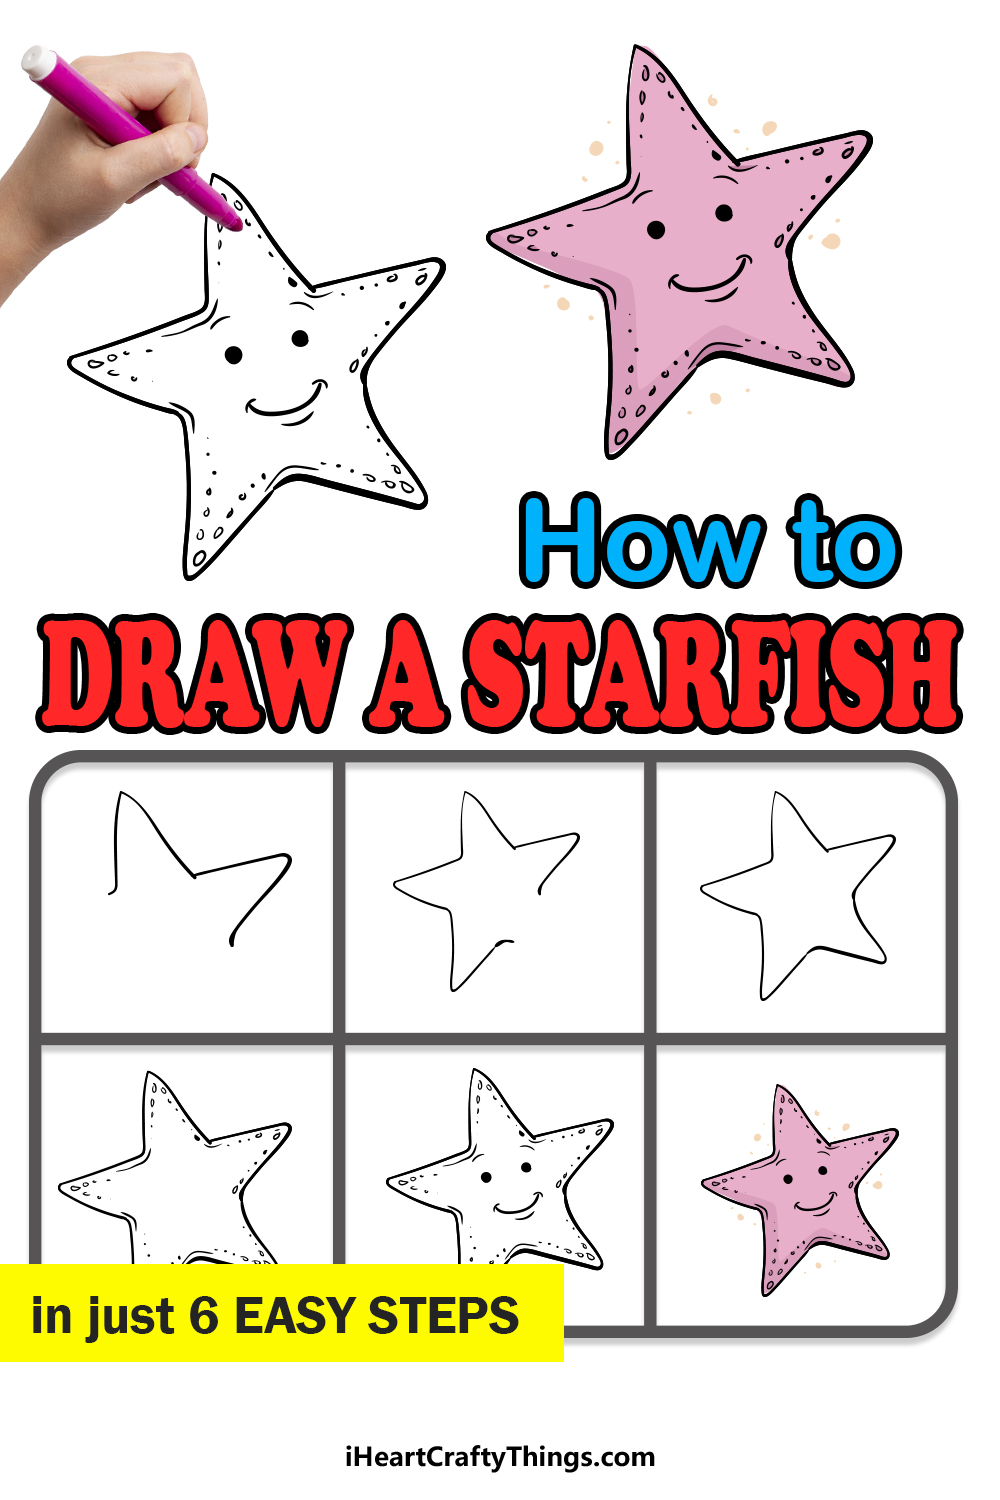 how to draw a starfish in 6 easy steps